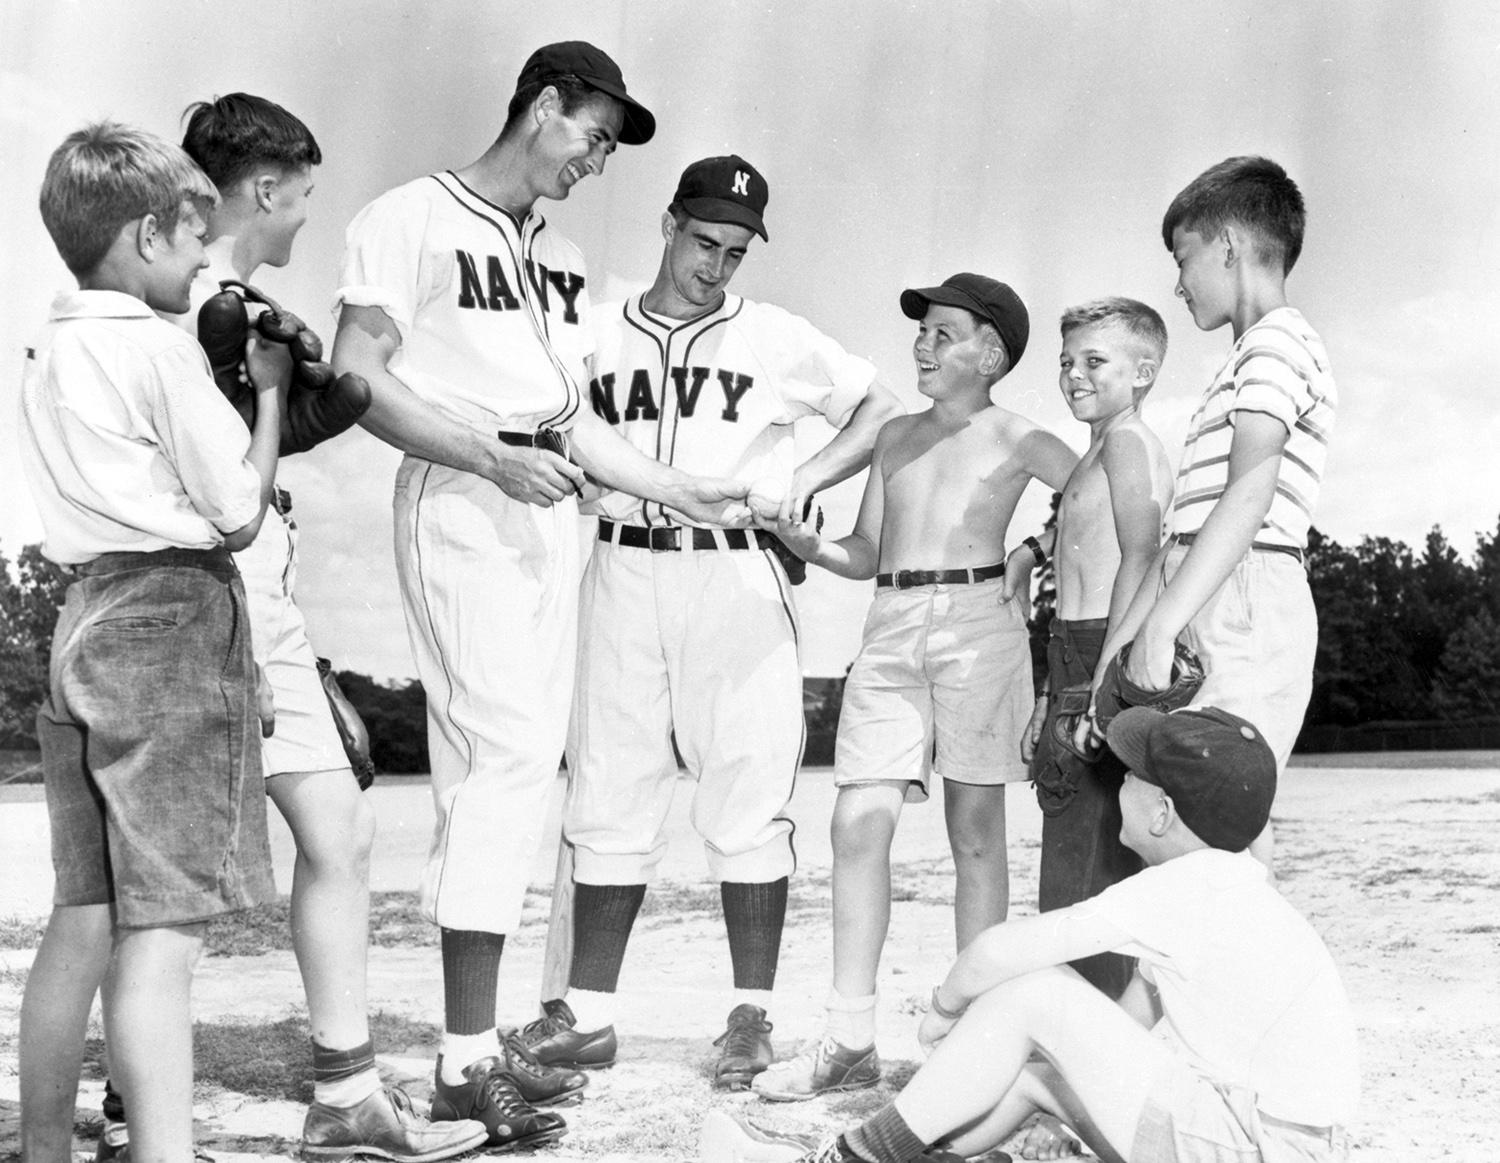 Ted Williams (left) and Red Sox teammate Johnny Pesky were in the same Navy Aviation training program during World War II. (National Baseball Hall of Fame)